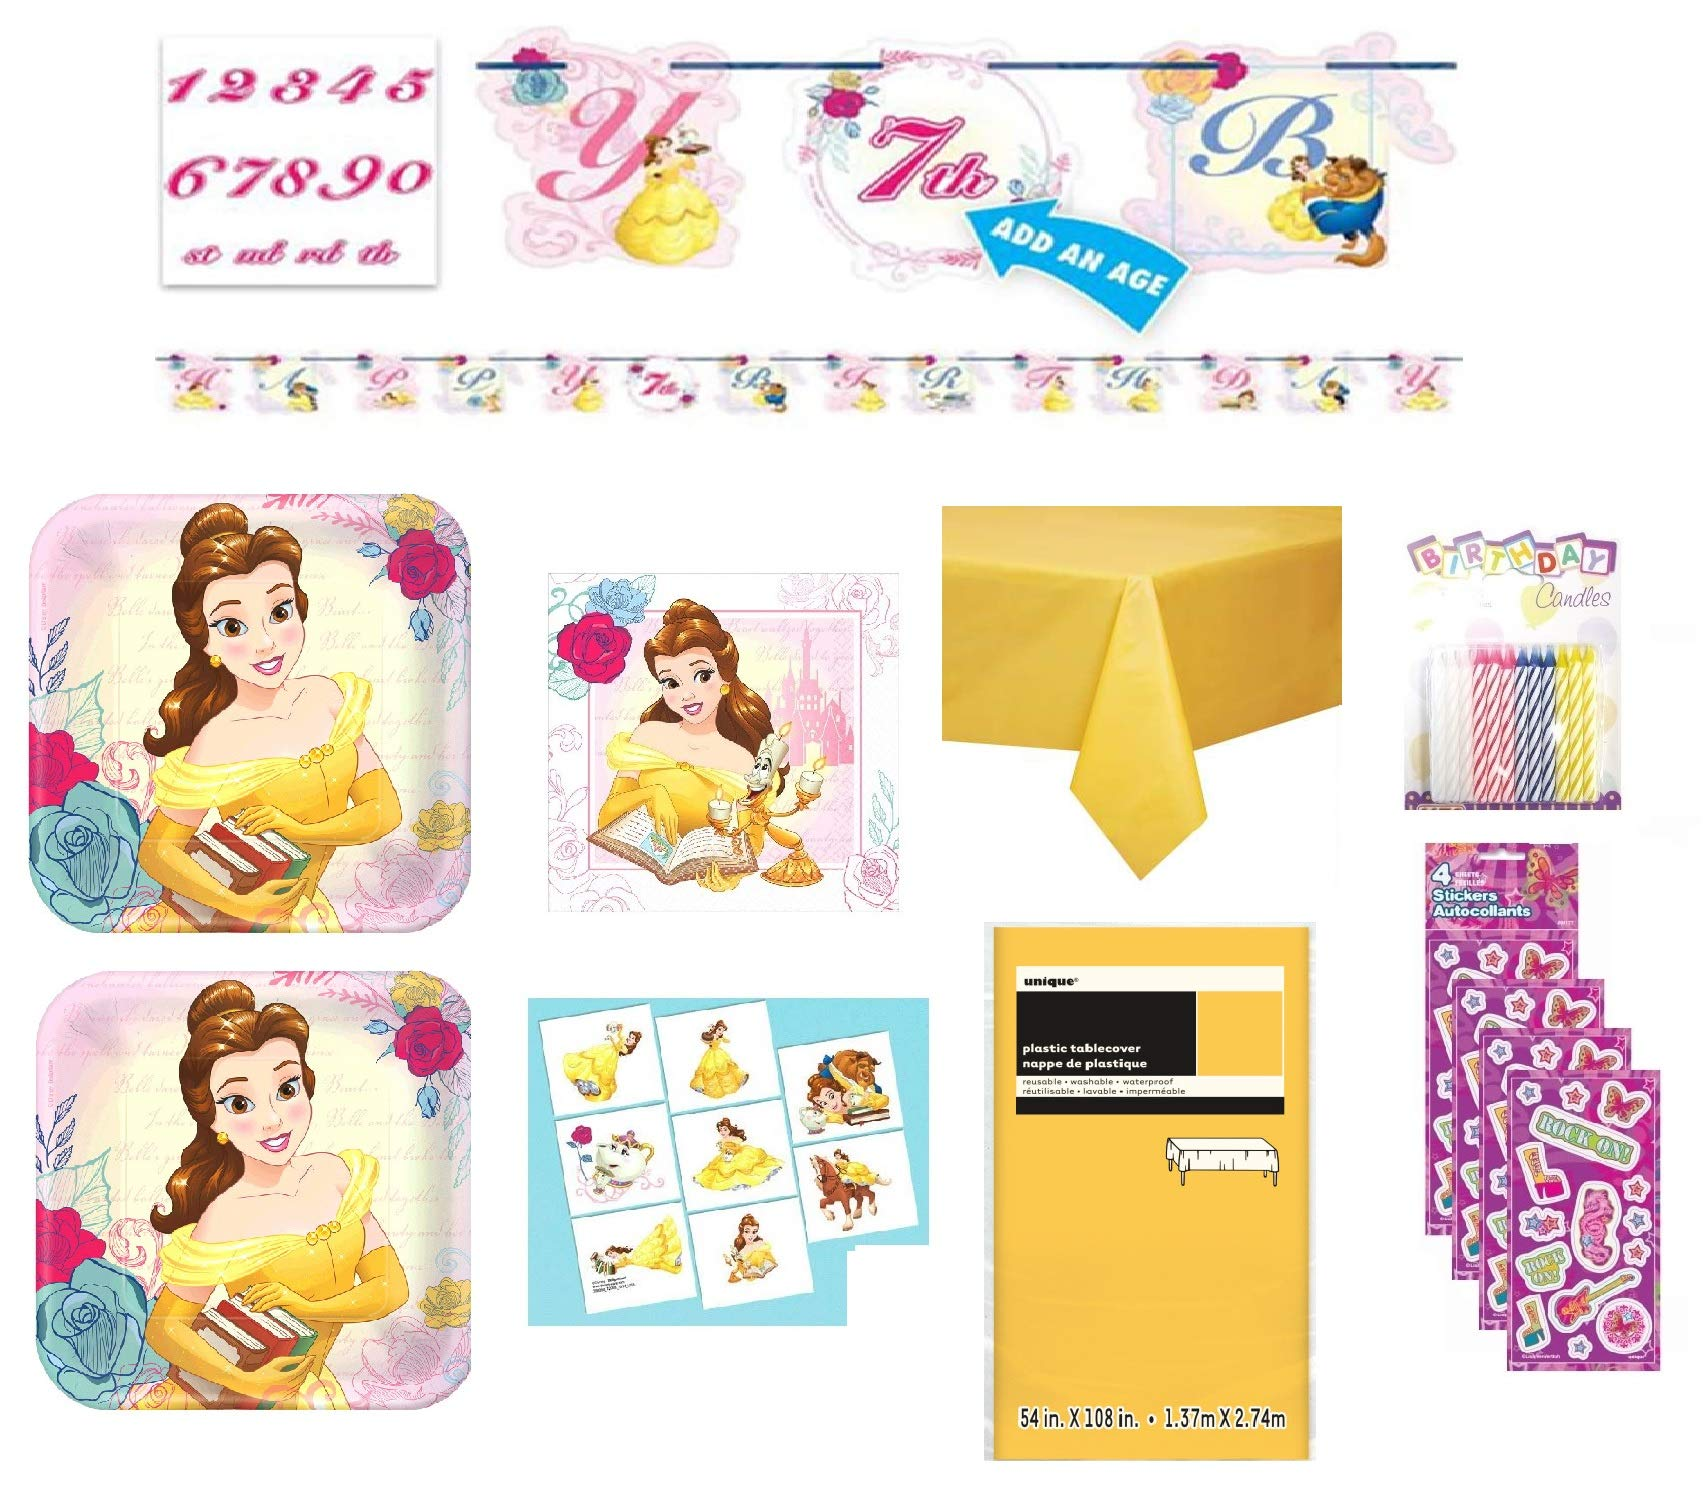 Beauty and the Beast Birthday Party Supply Bundle for 16 includes Plates, Napkins, Table Cover, Tattoos, Stickers, Candles